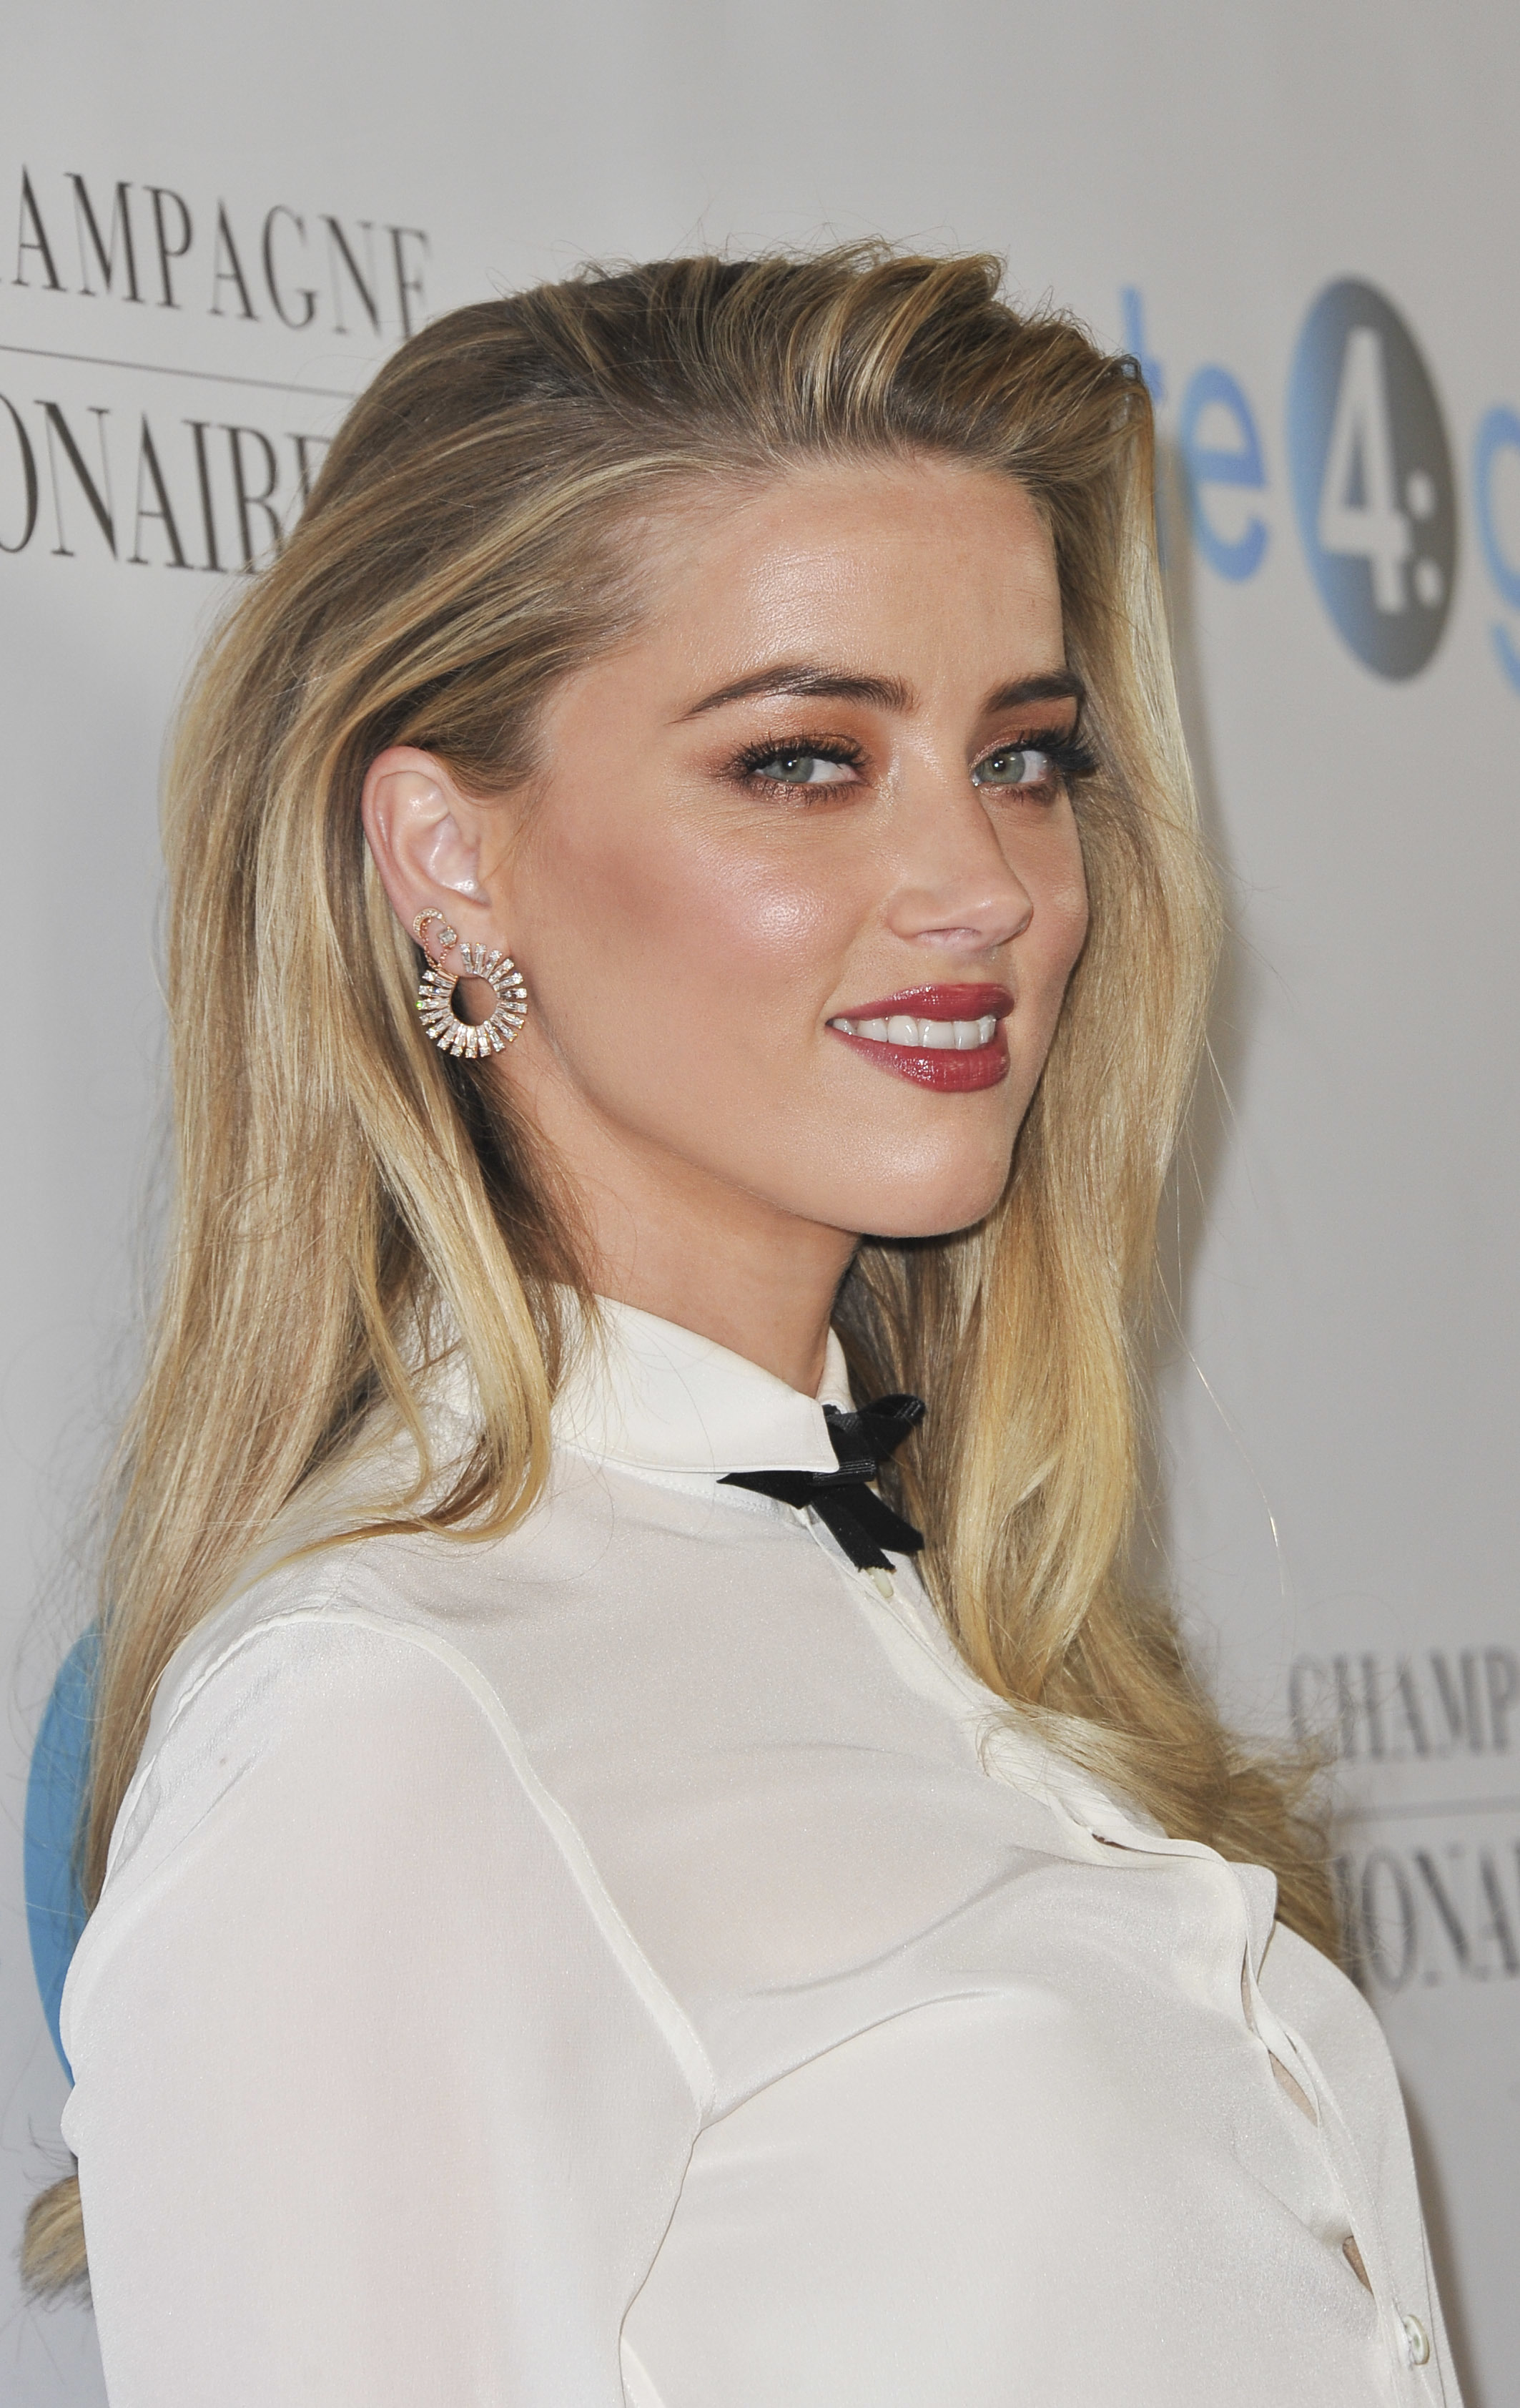 The 4th Annual Unite4: Humanity Gala 2017 - Arrivals  Featuring: Amber Heard Where: Los Angeles, California, United States When: 07 Apr 2017 Credit: Apega/WENN.com